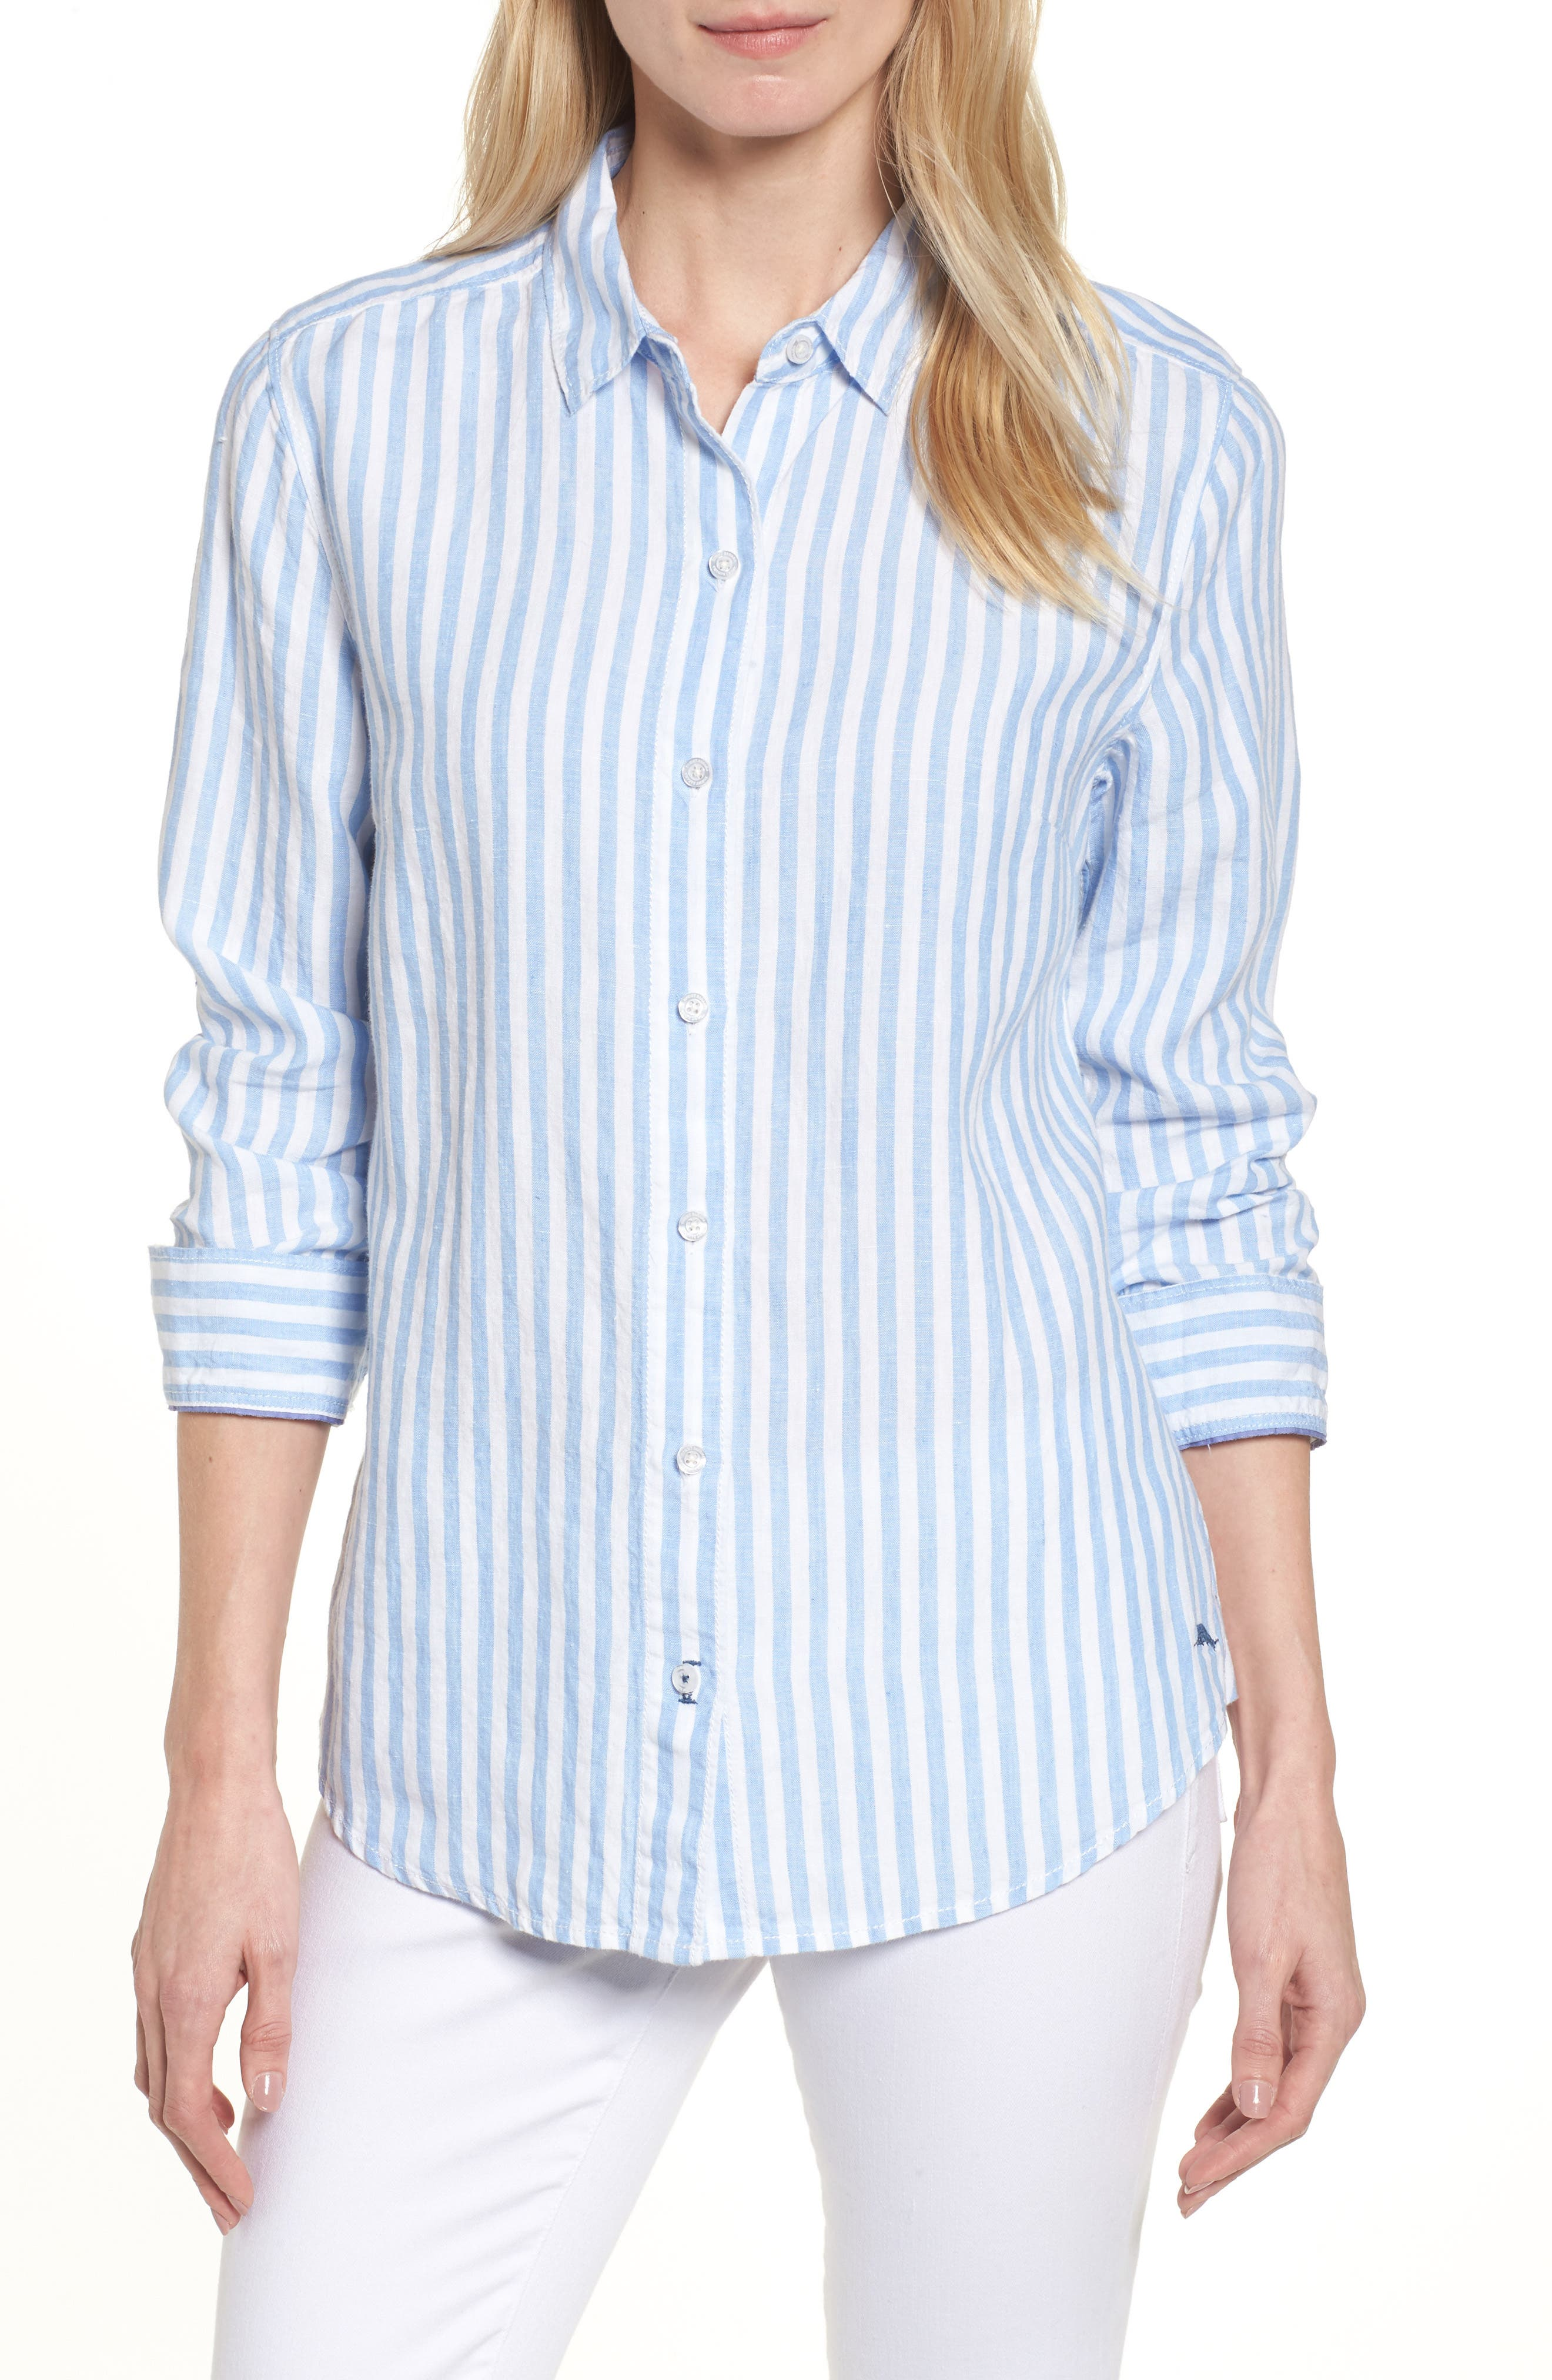 Cabana Stripe Button-Up Top,                             Main thumbnail 1, color,                             DUSTY LUPINE